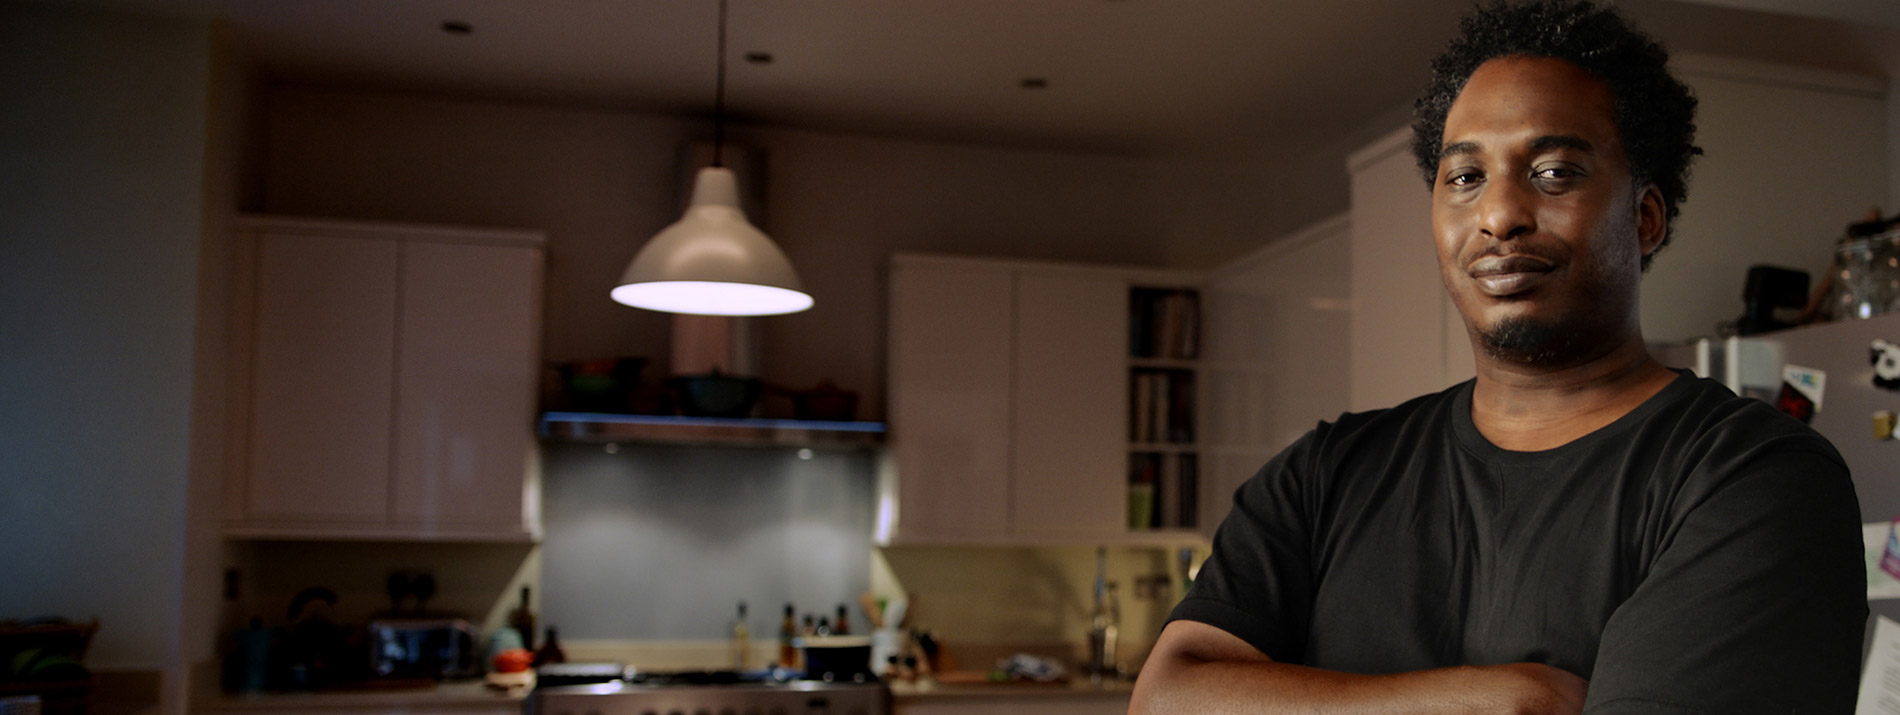 A smiling man standing in his kitchen.